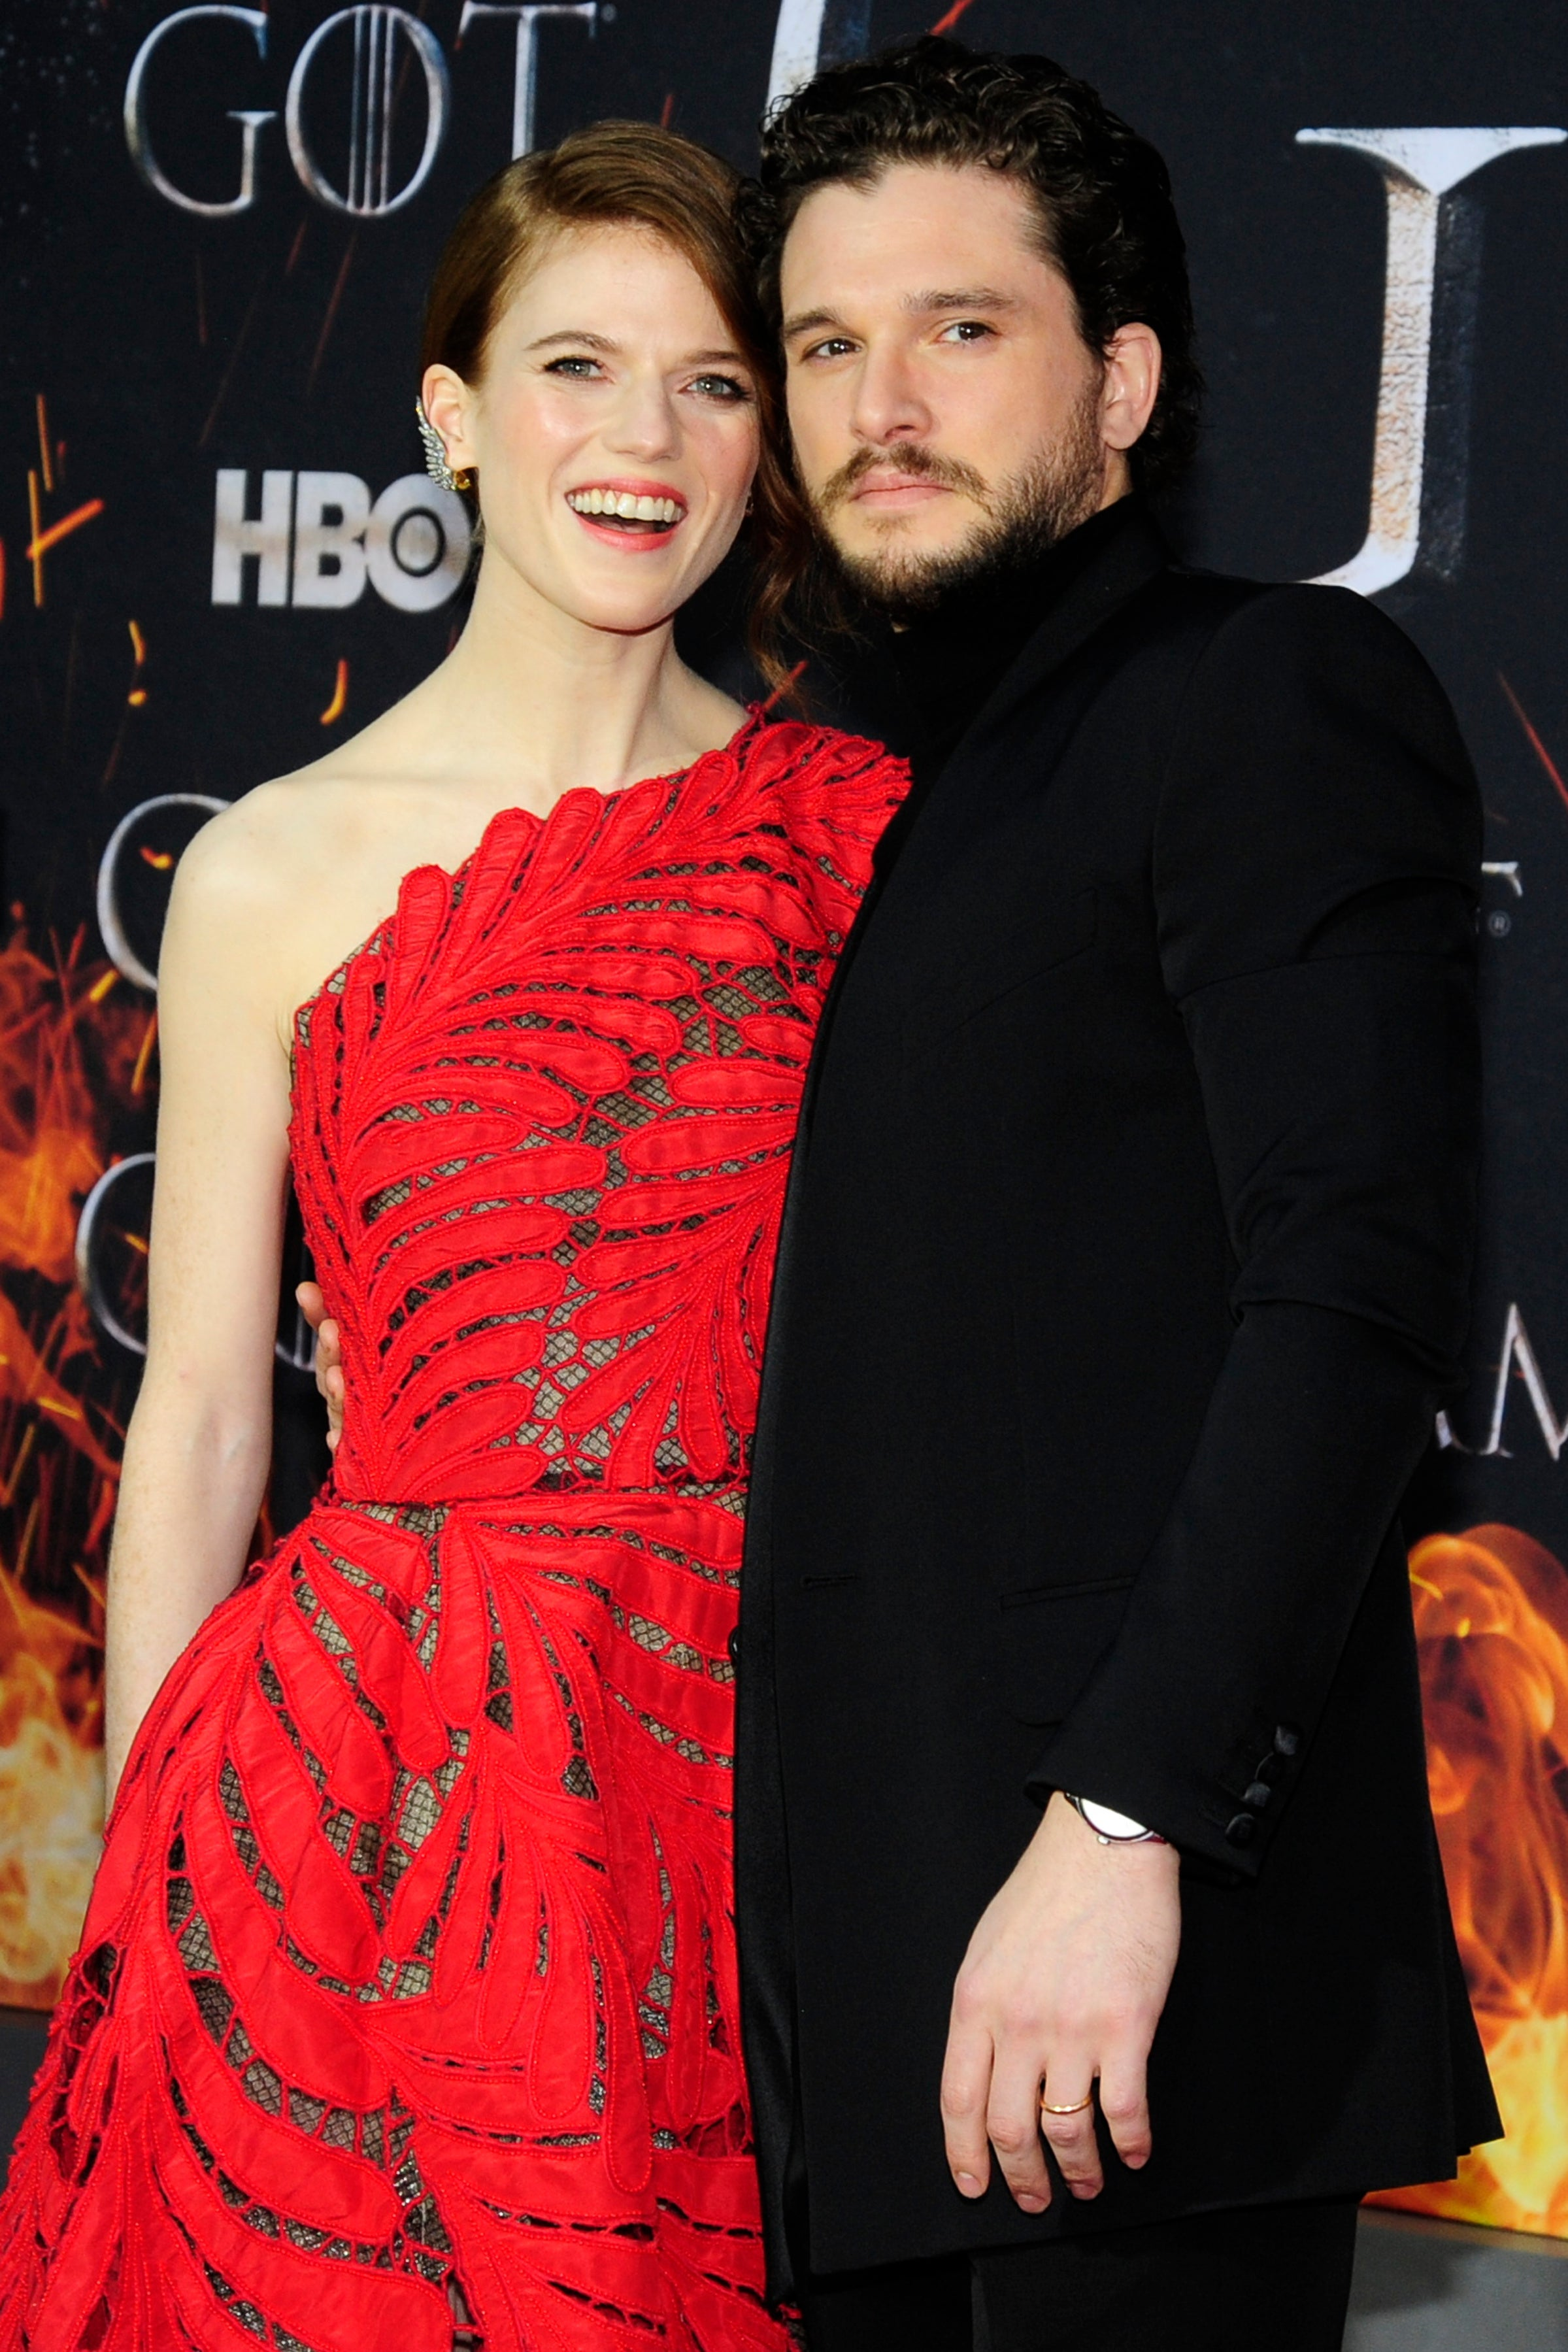 Actors Kit Harington and Rose Leslie at the premiere of Game of Thrones season 8, 2019